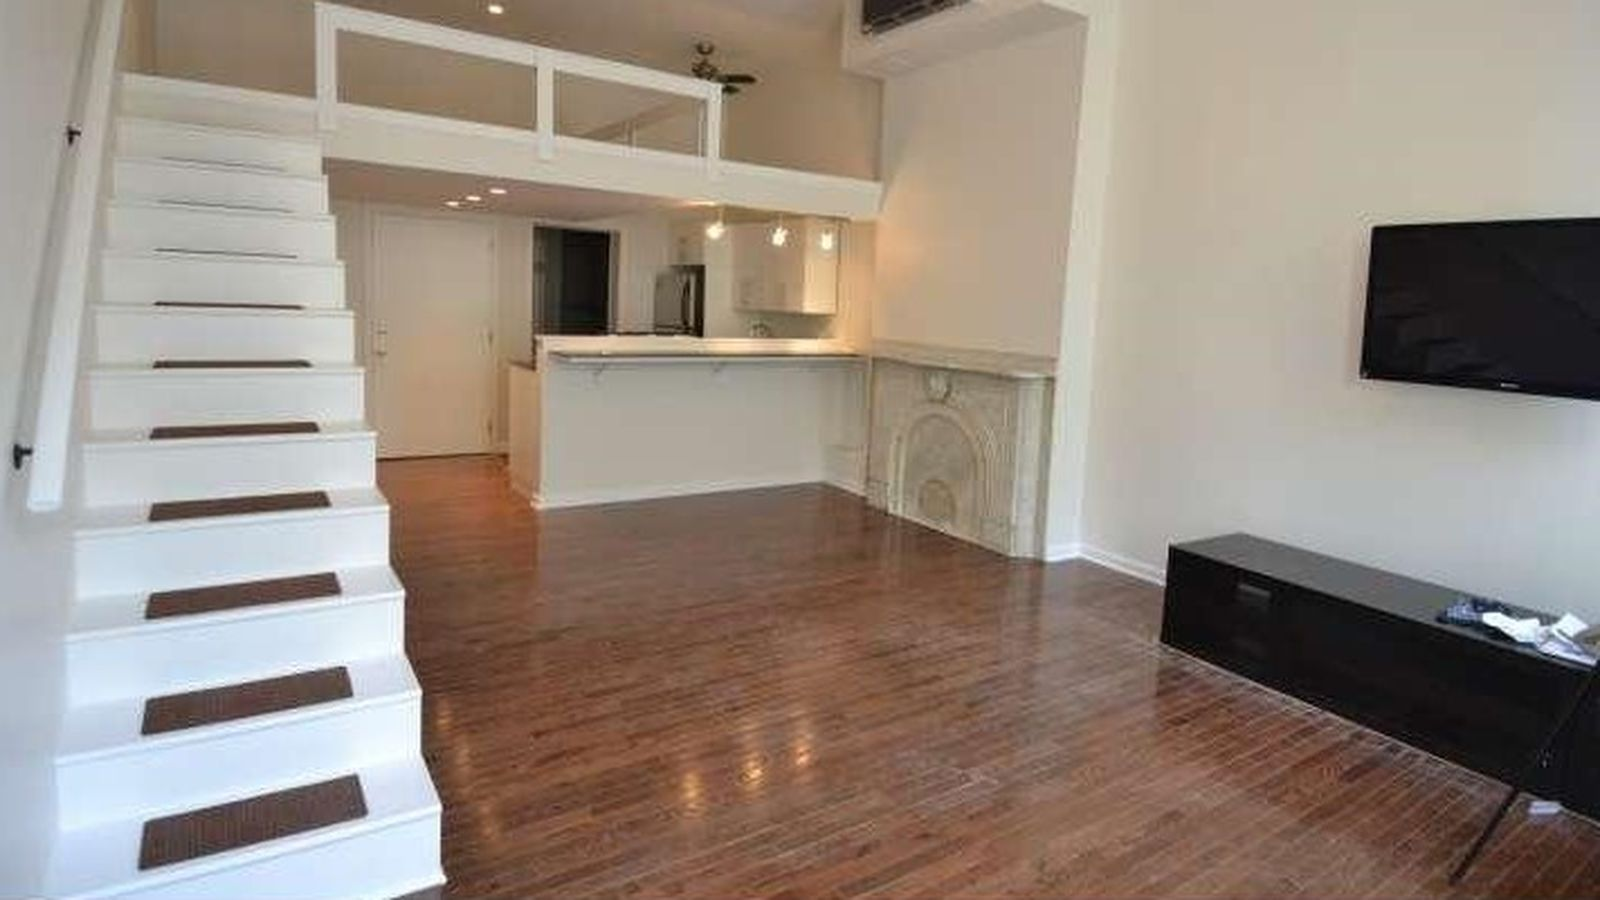 1br apartments you can rent in philly for 1 550 right now renting